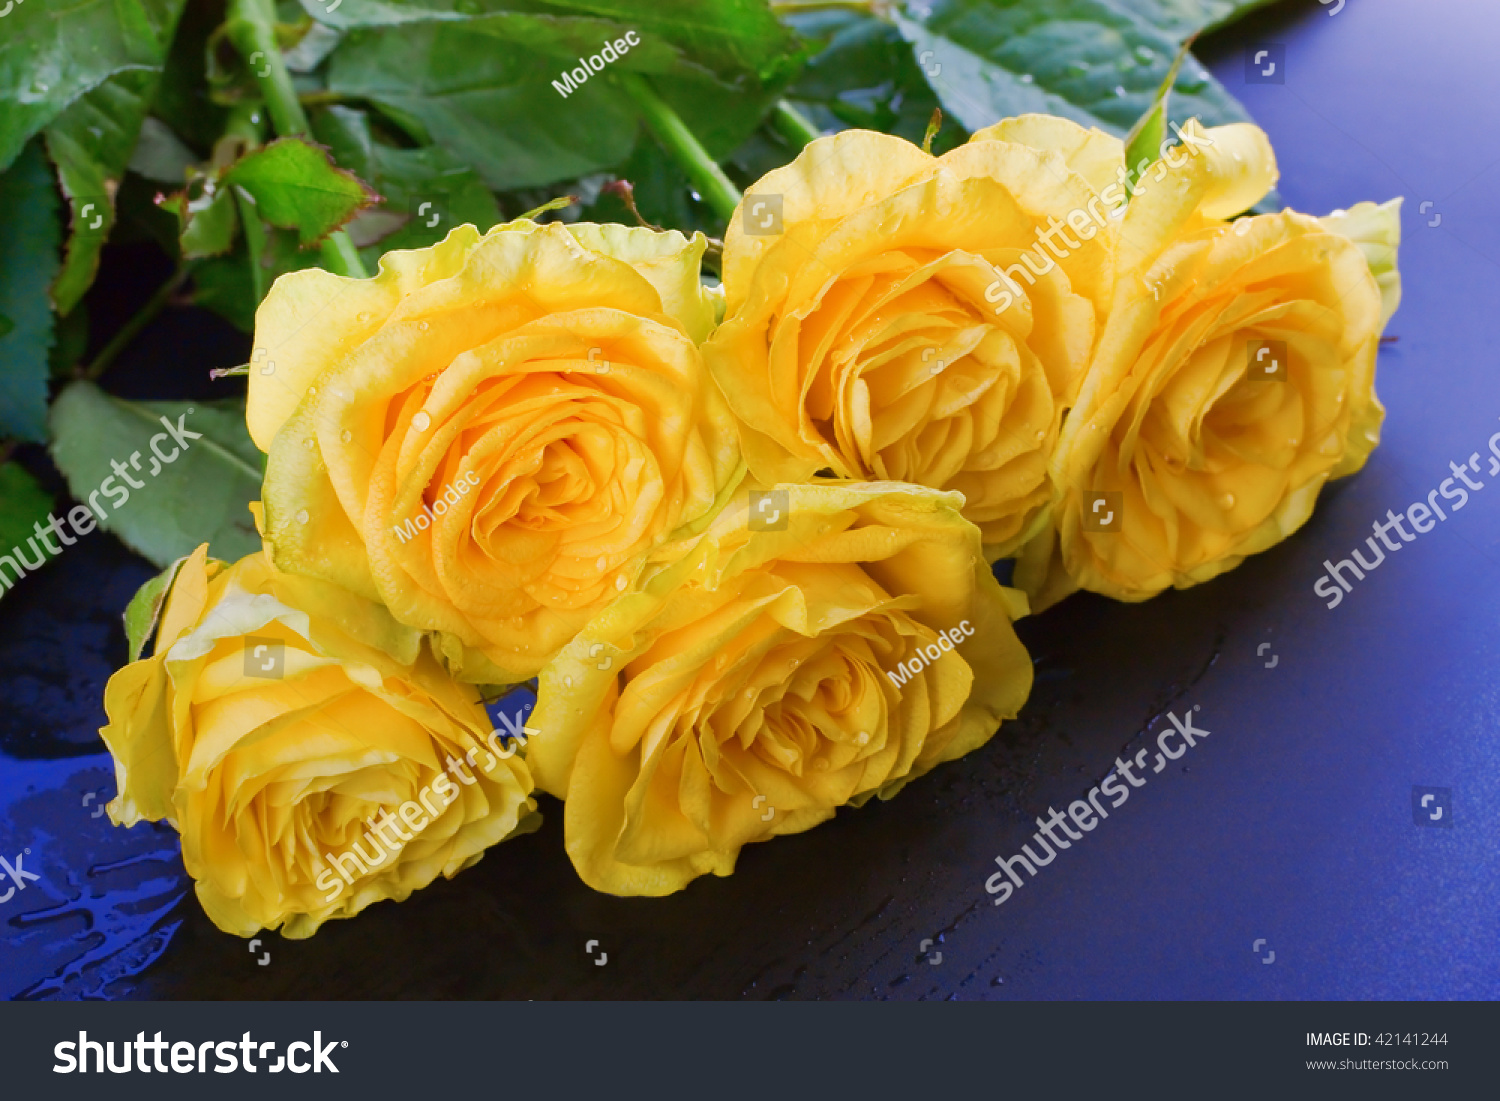 yellow roses with water drops - photo #27